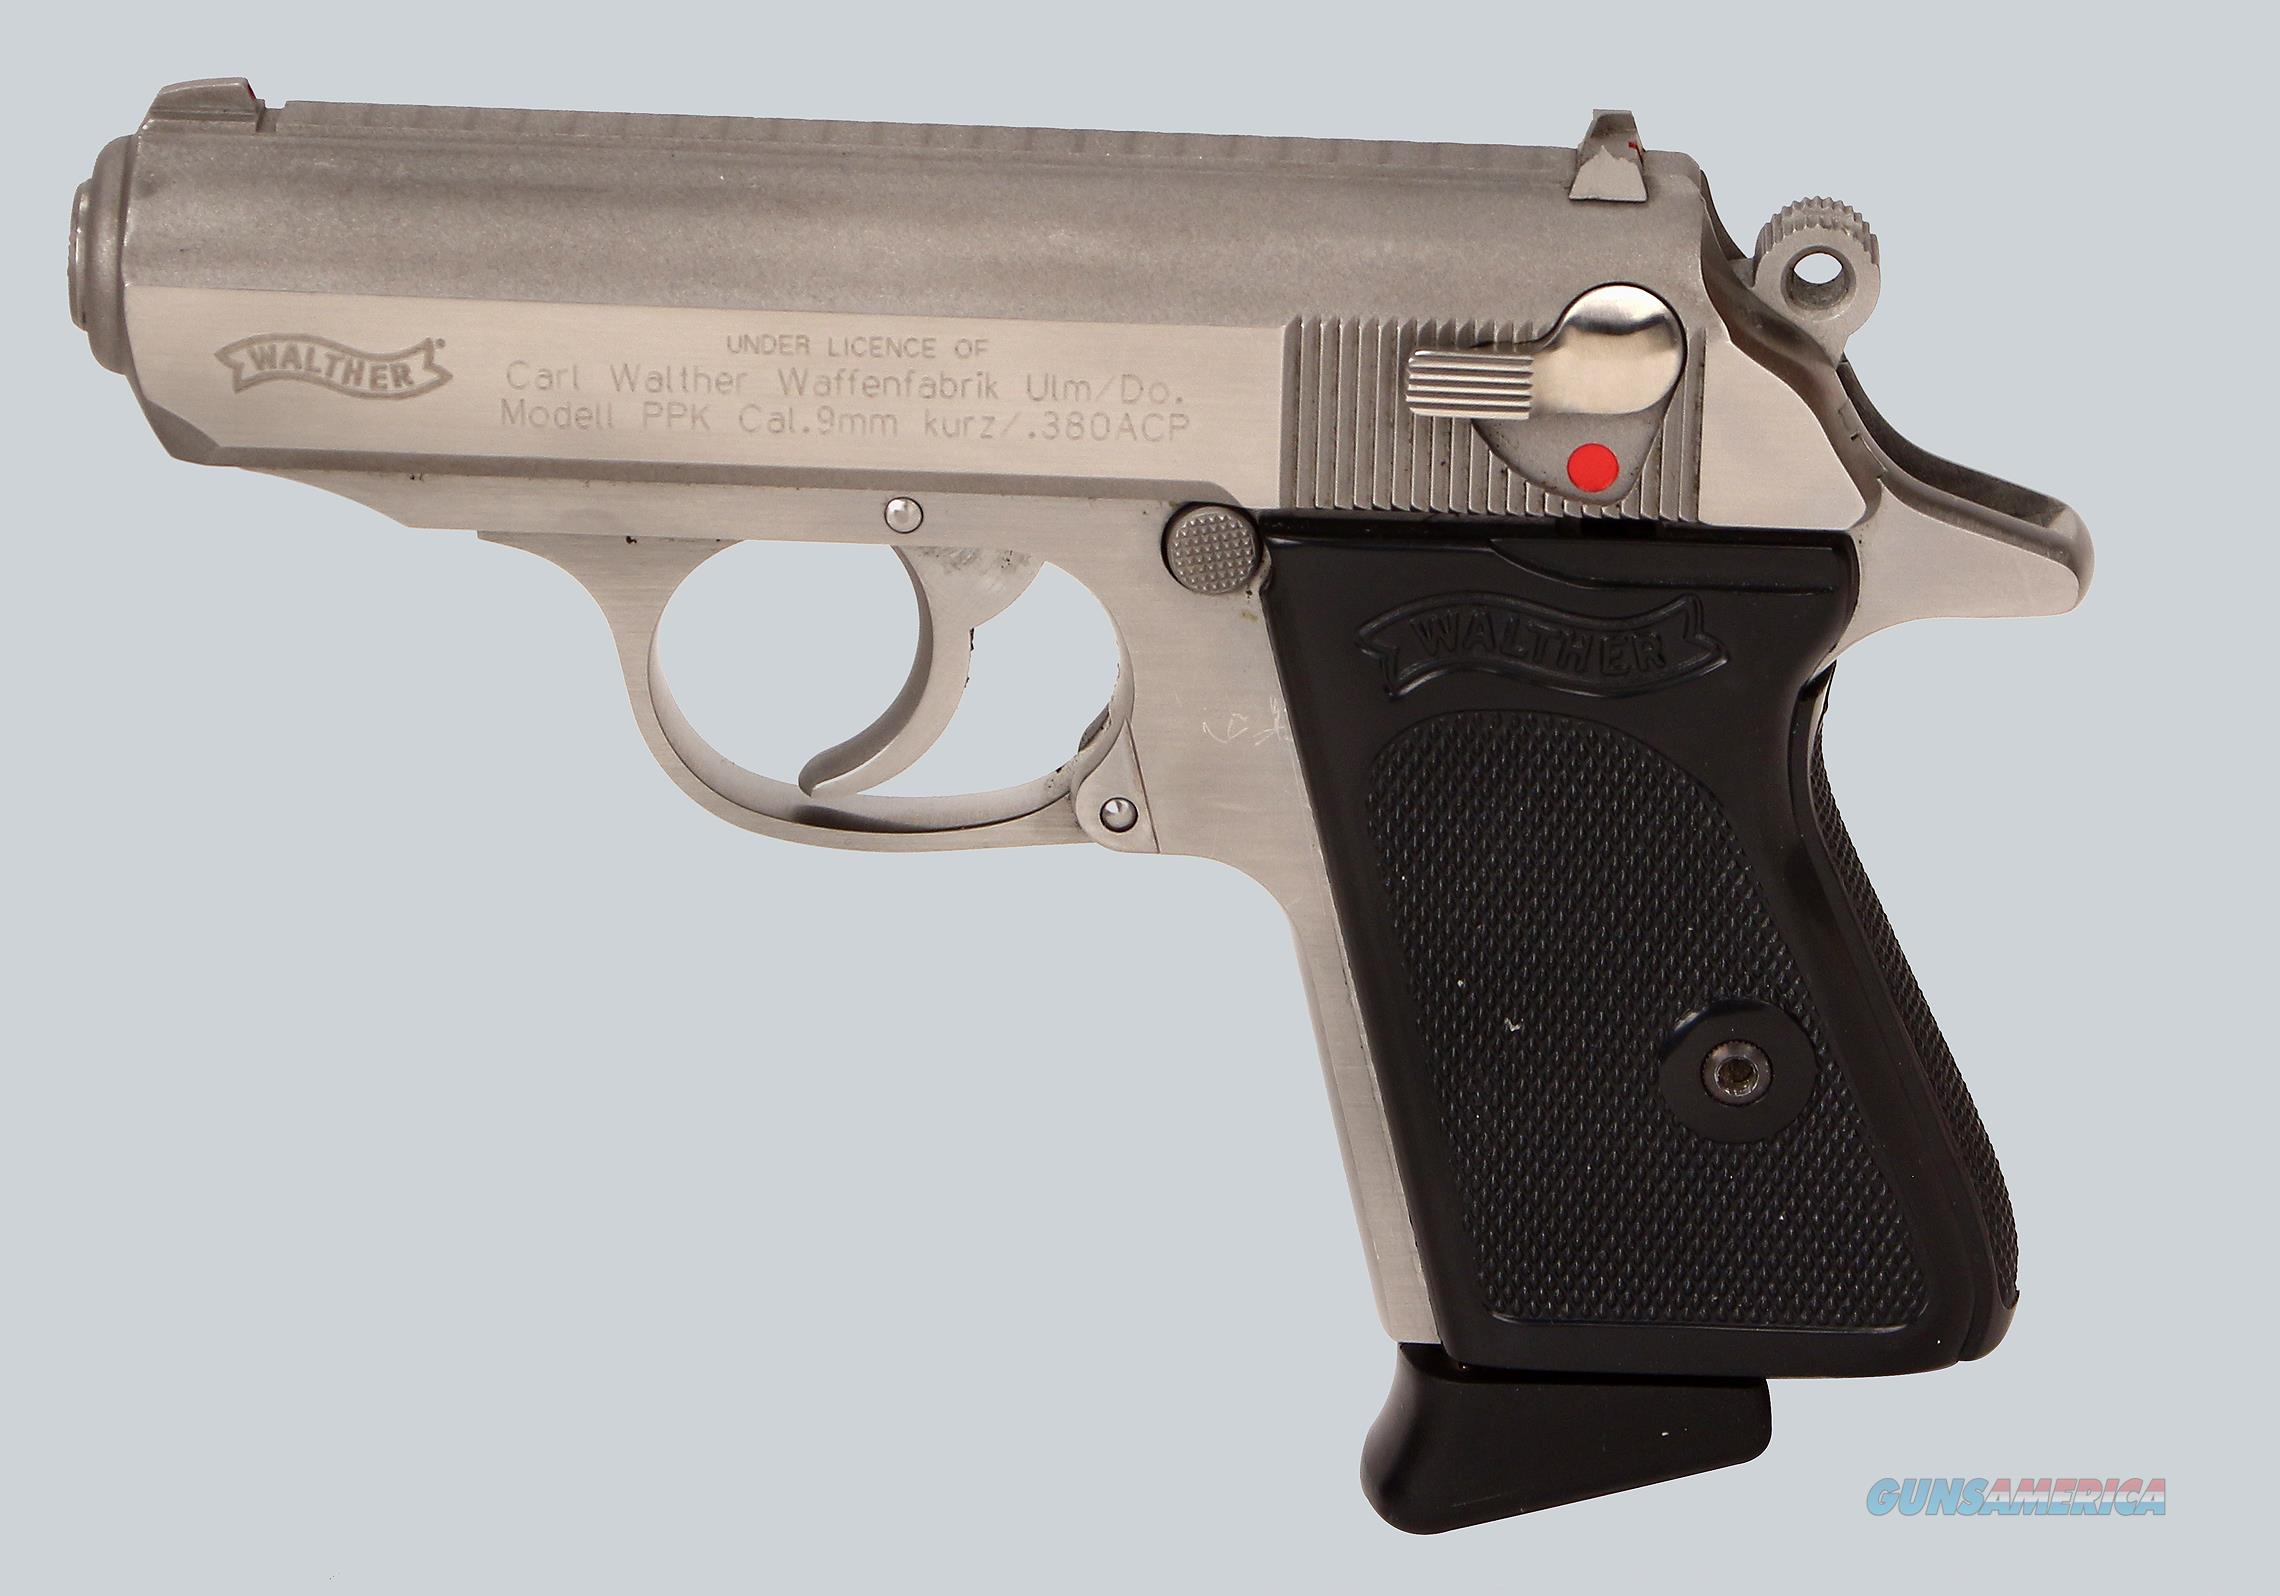 Walther 380acp PPK Pistol  Guns > Pistols > Walther Pistols > Post WWII > PPK Series